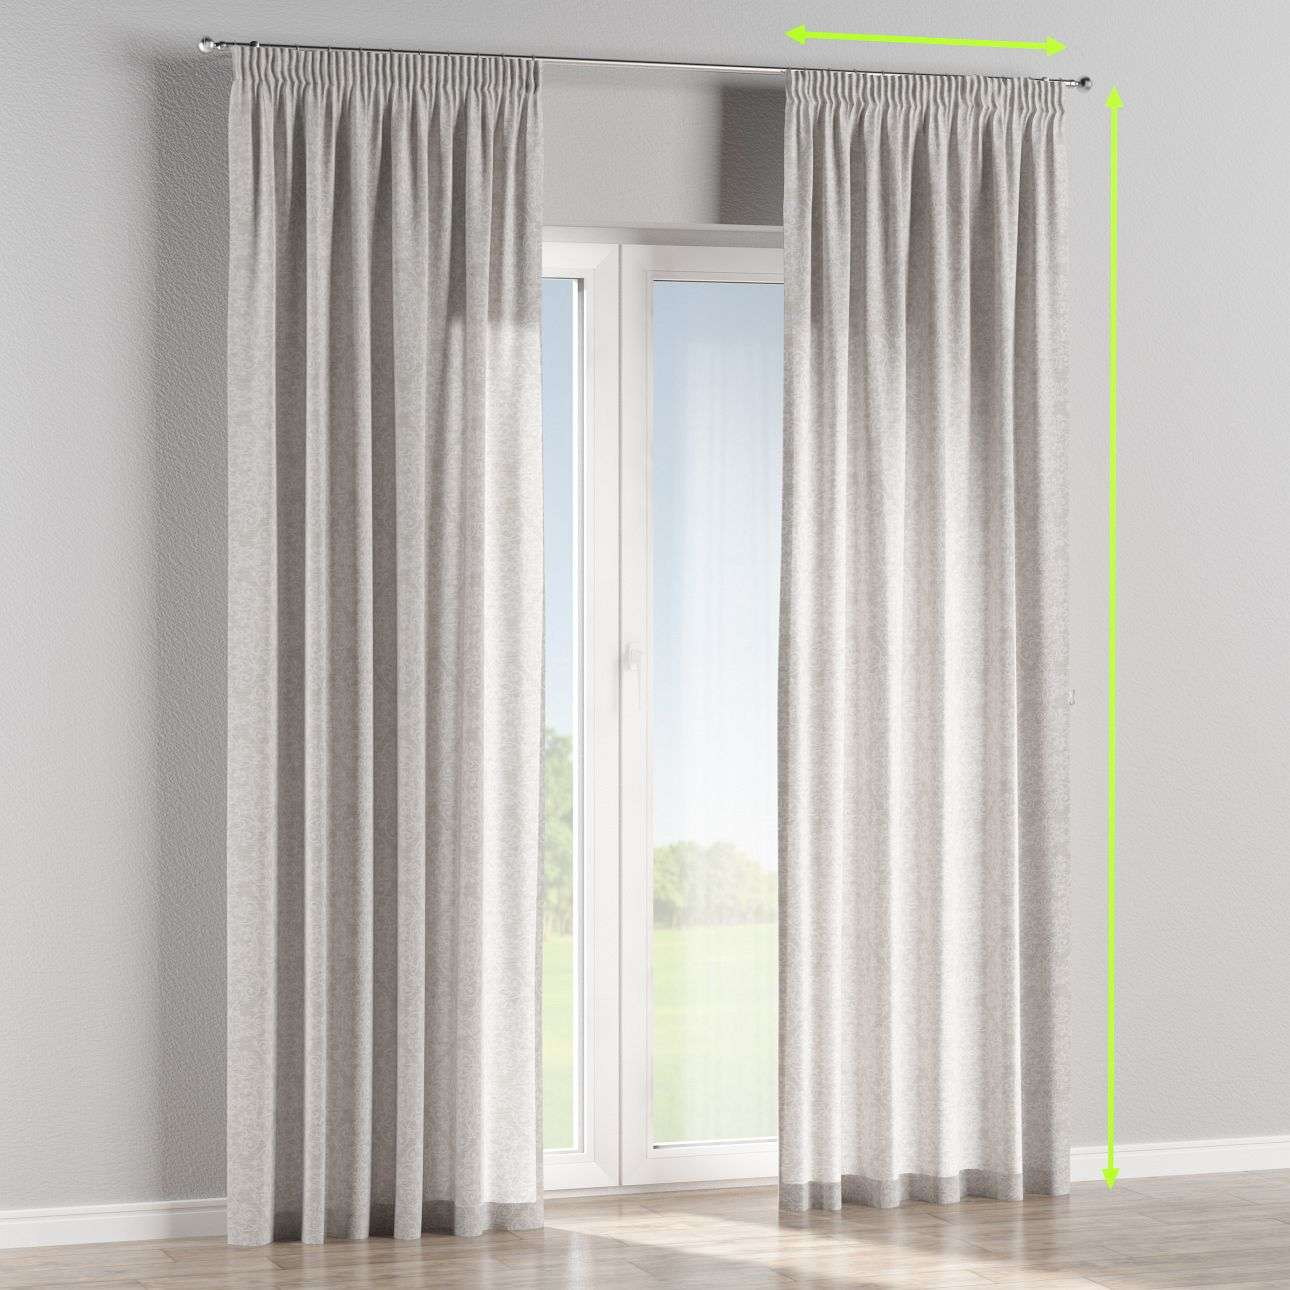 Pencil pleat lined curtains in collection Venice, fabric: 140-49